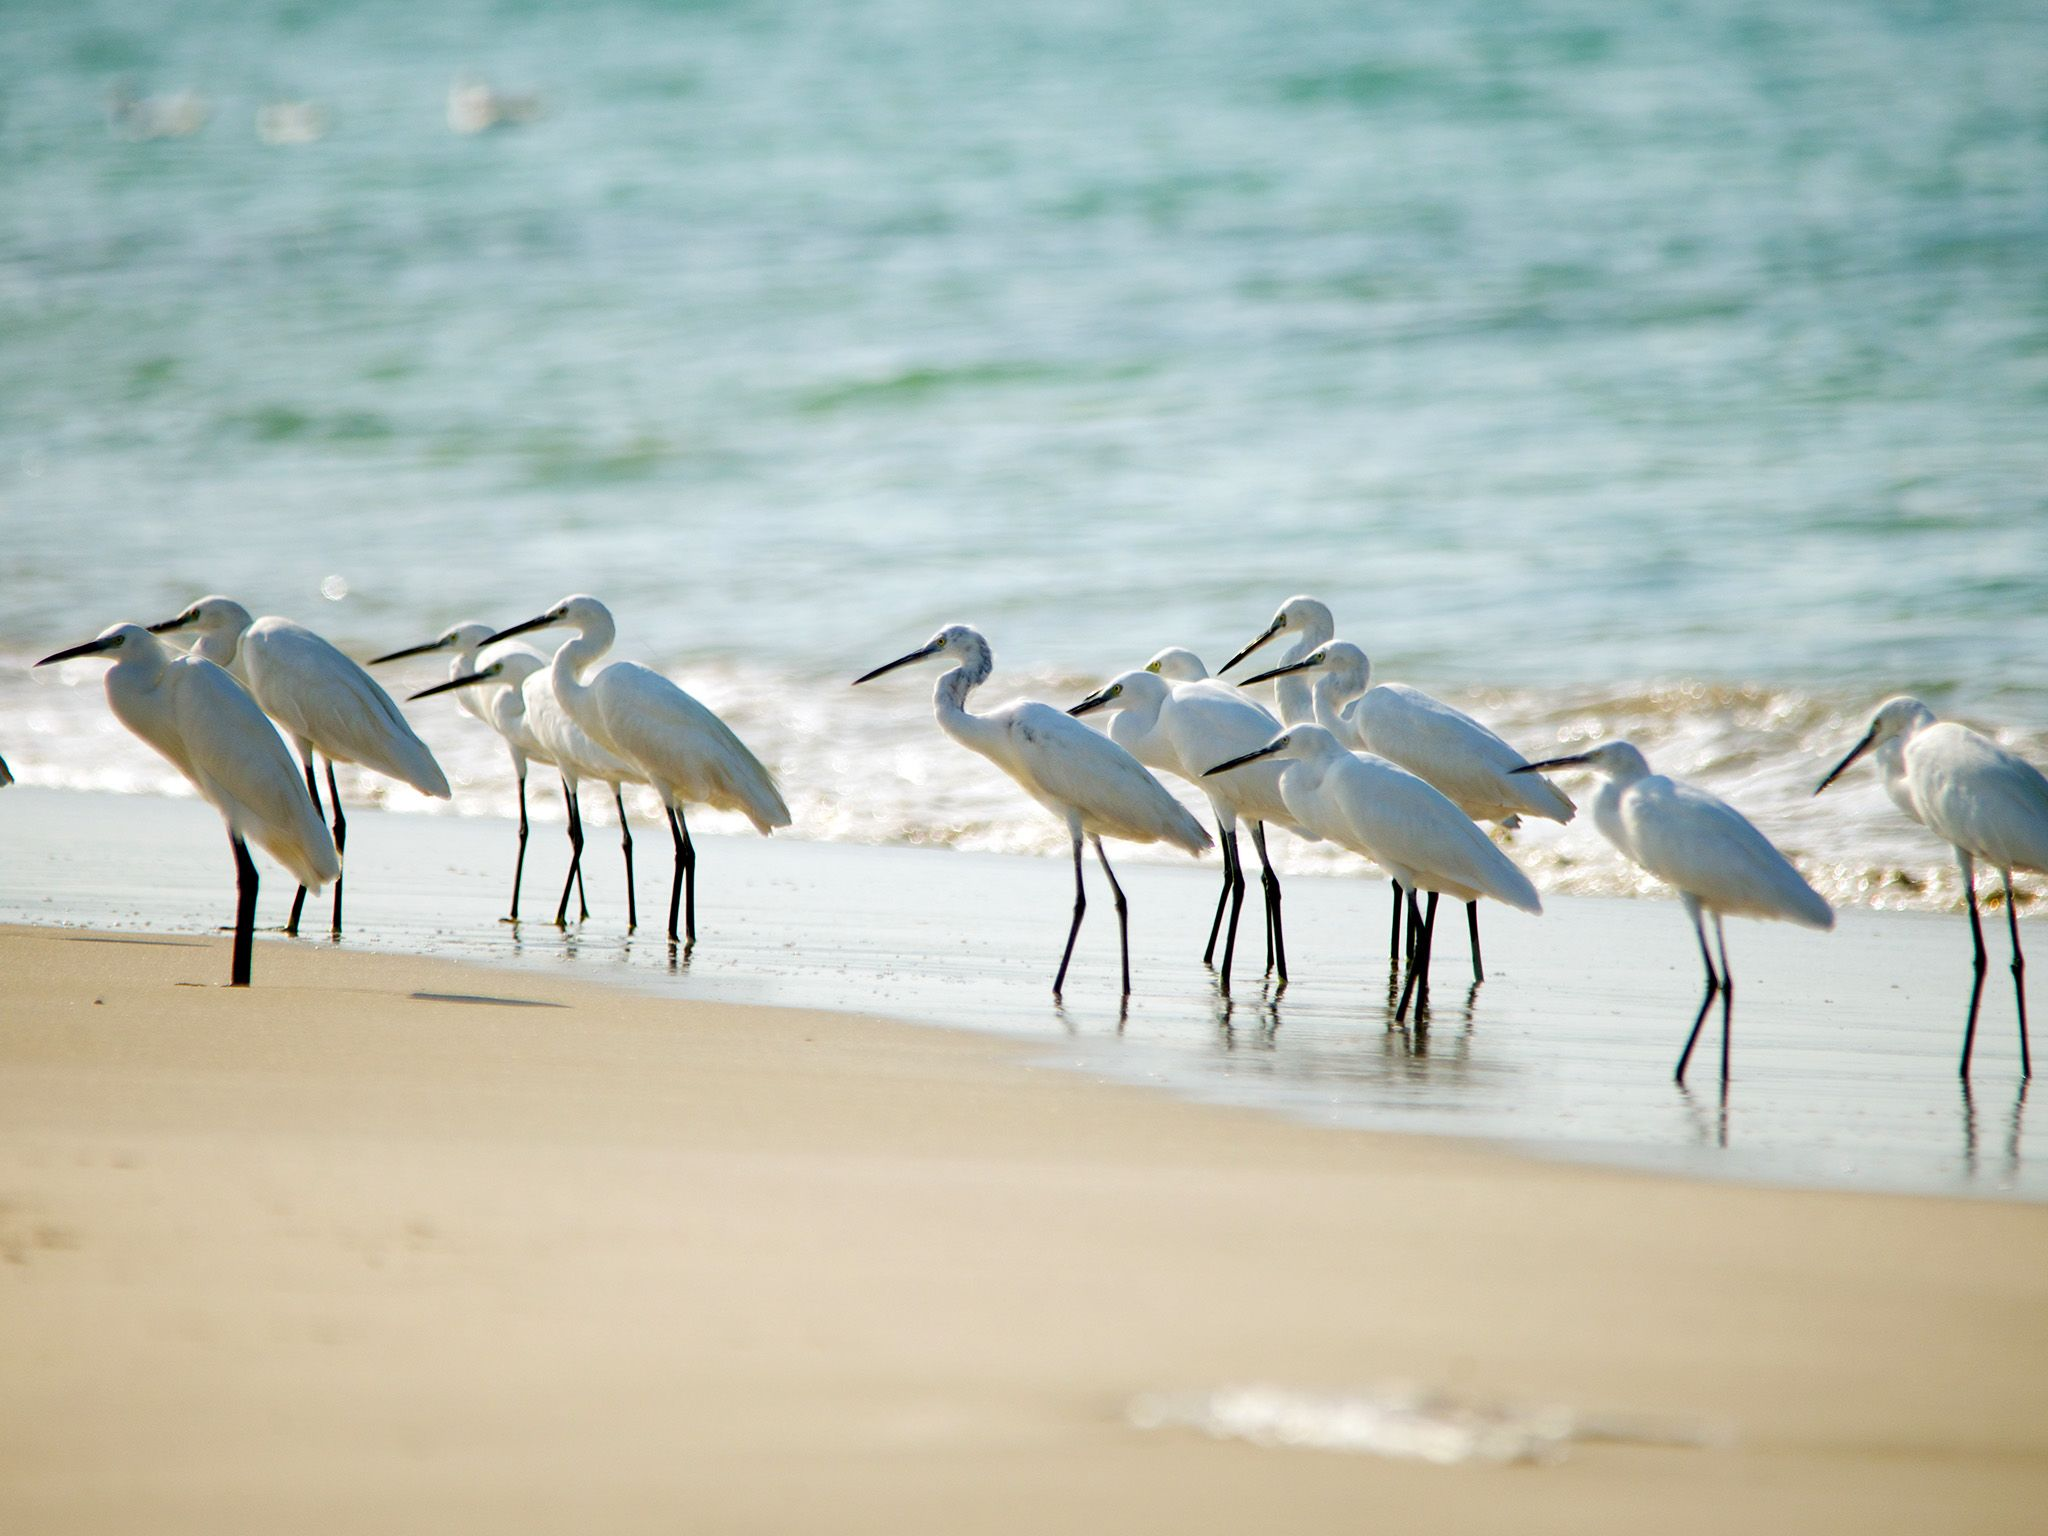 Sri Lanka: A flock of Little Egrets on the shoreline of a Sri Lankan beach. The Egrets wade into... [Photo of the day - مارس 2015]